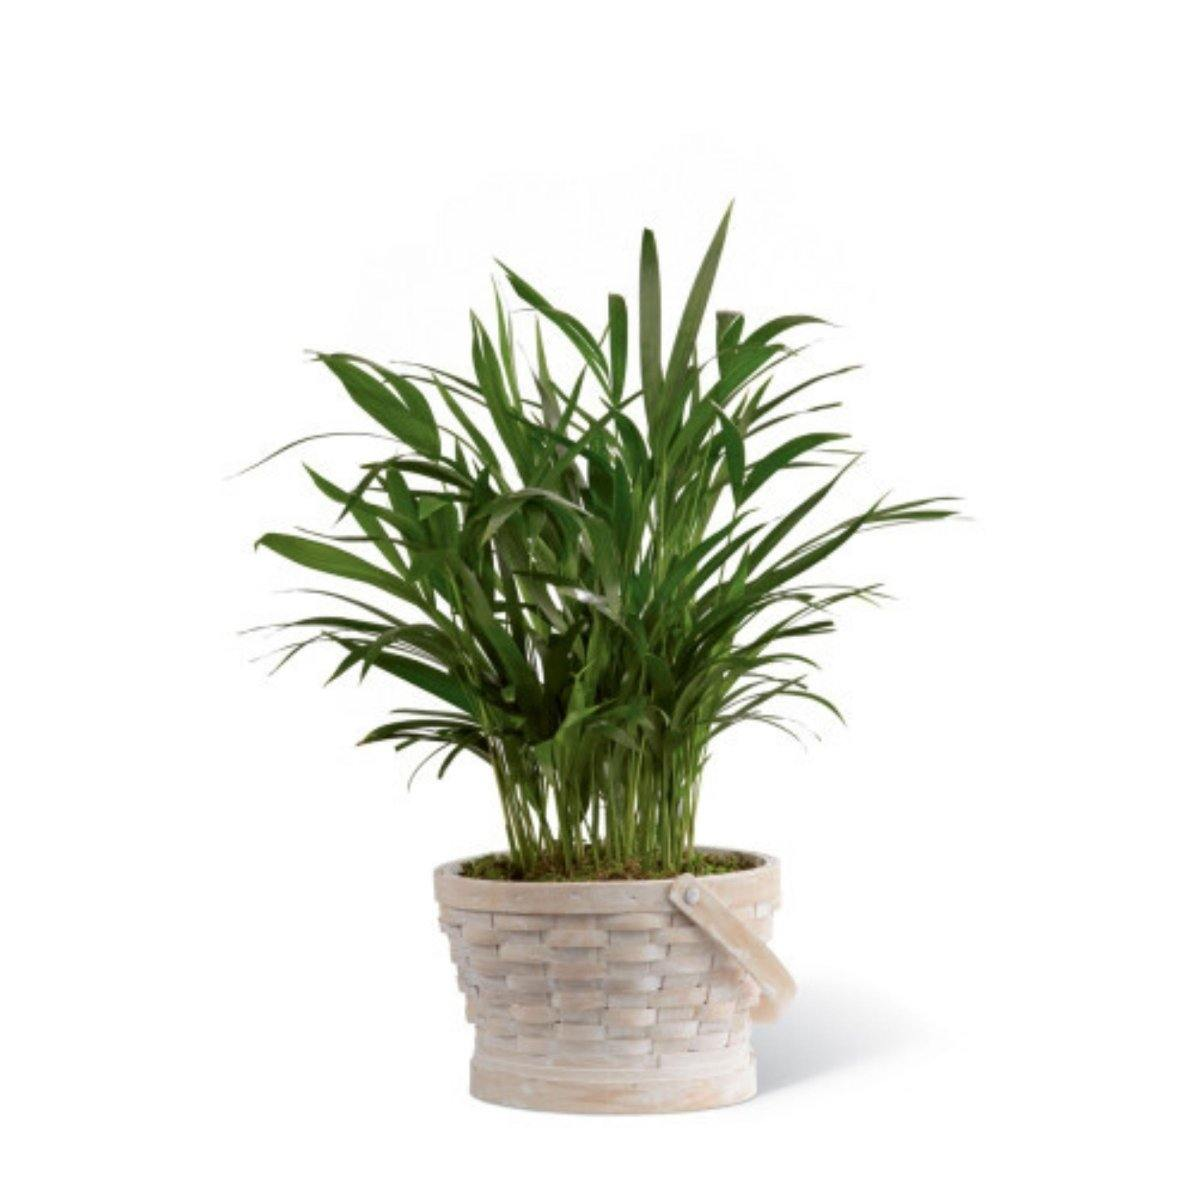 The FTD® Deeply Adored Palm Planter - Shalimar Flower Shop